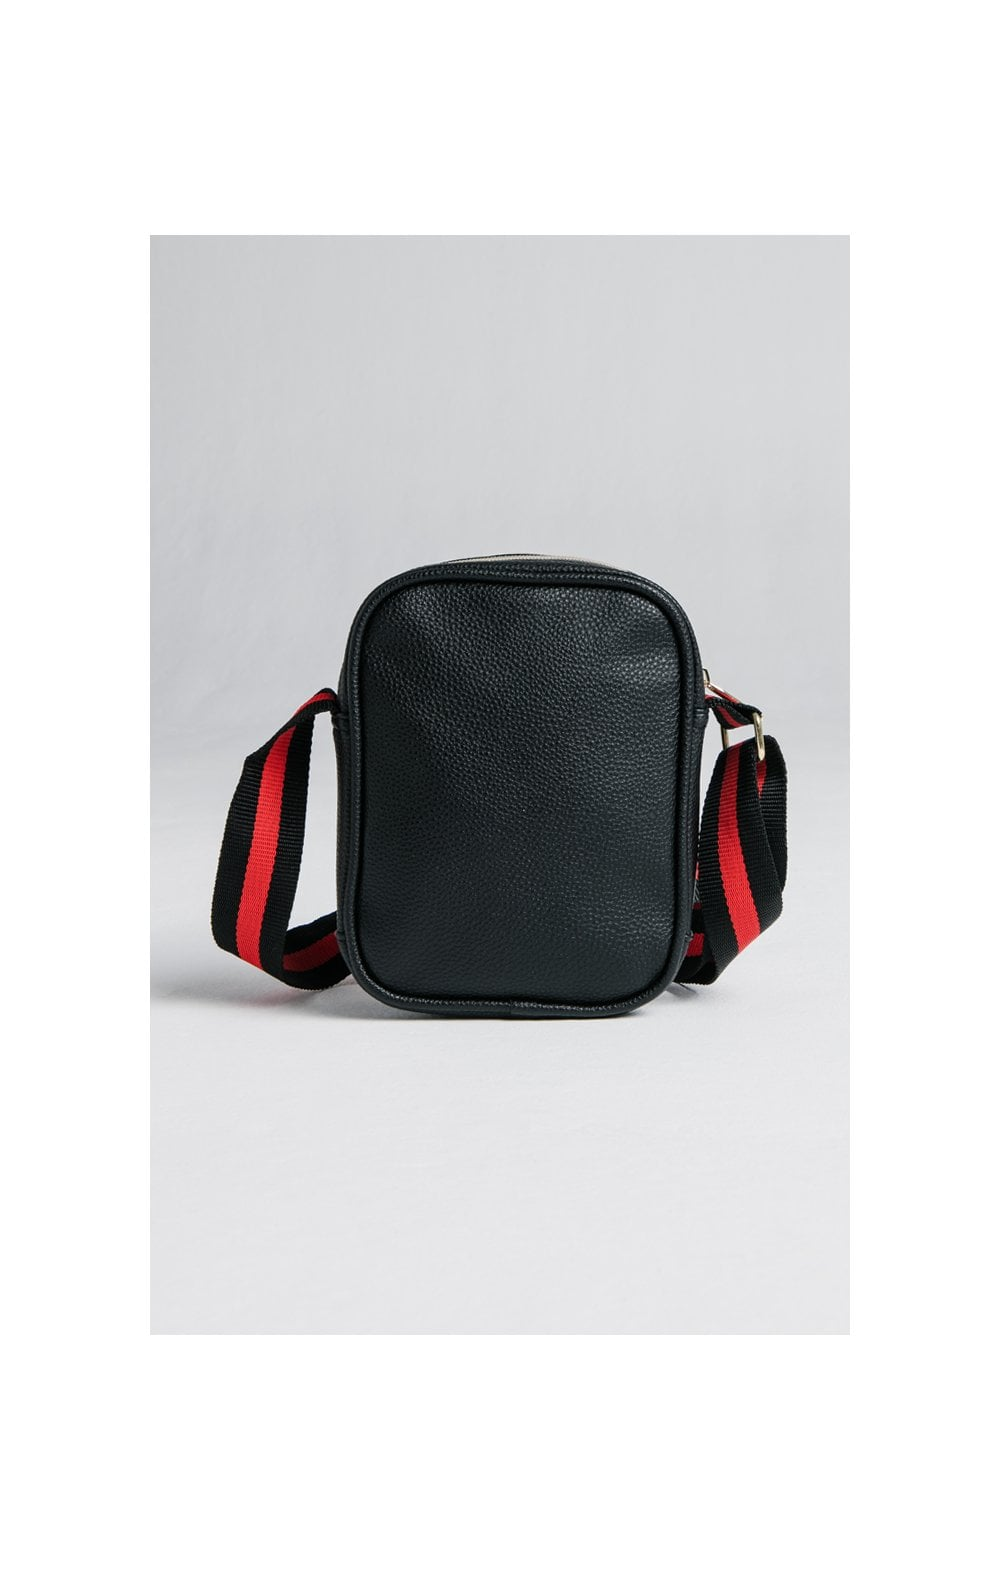 SikSilk Cross Body Bag - Black (5)